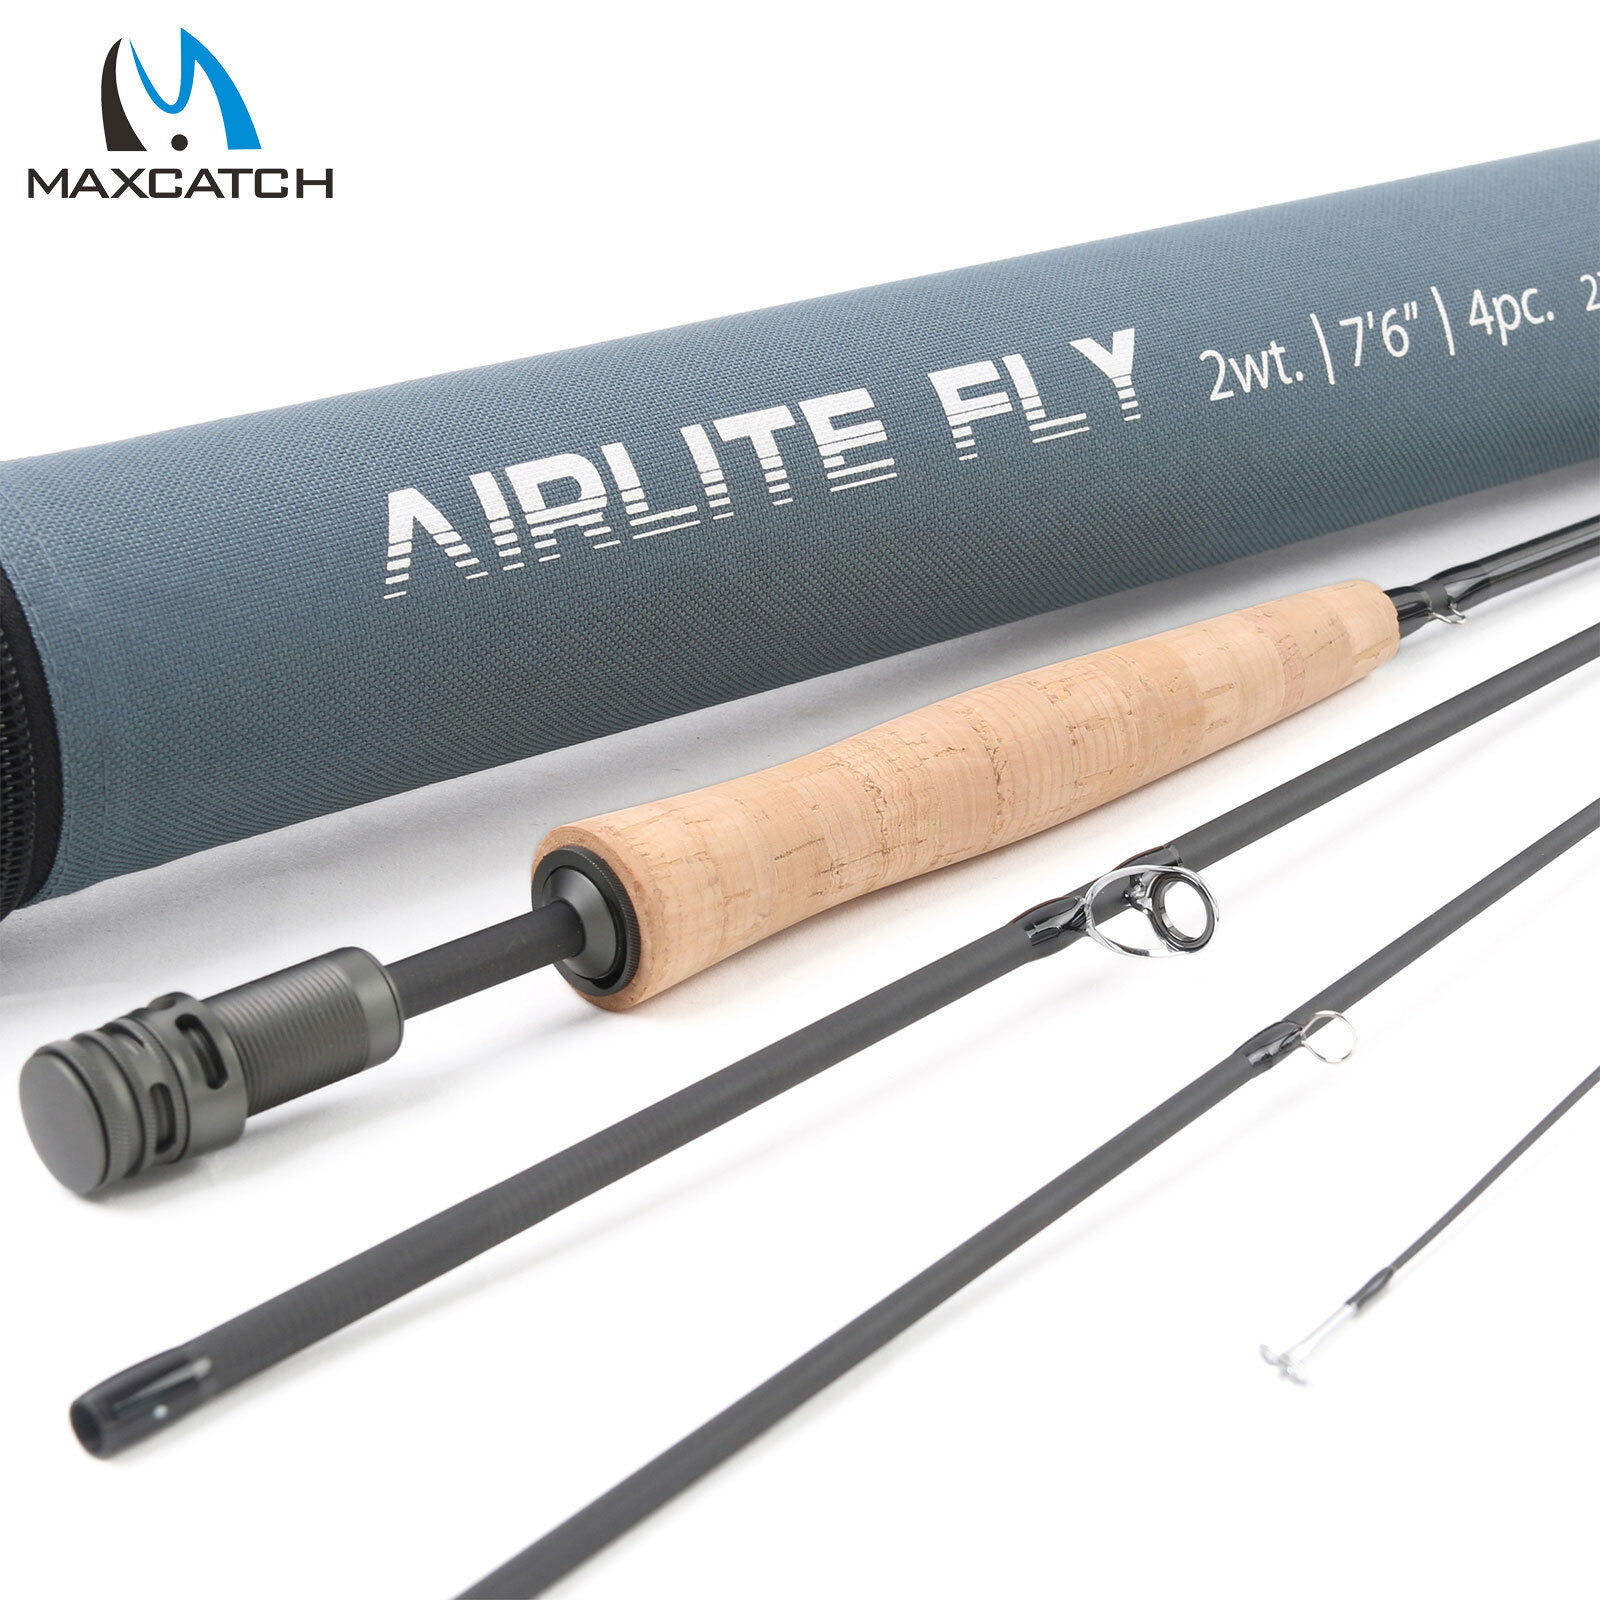 Maxcatch Maxcatch Maxcatch AIRLITE 2/3WT 7'6'' Lightweight Fly Fishing Rod IM10 Carbon Fiber 2f74fc